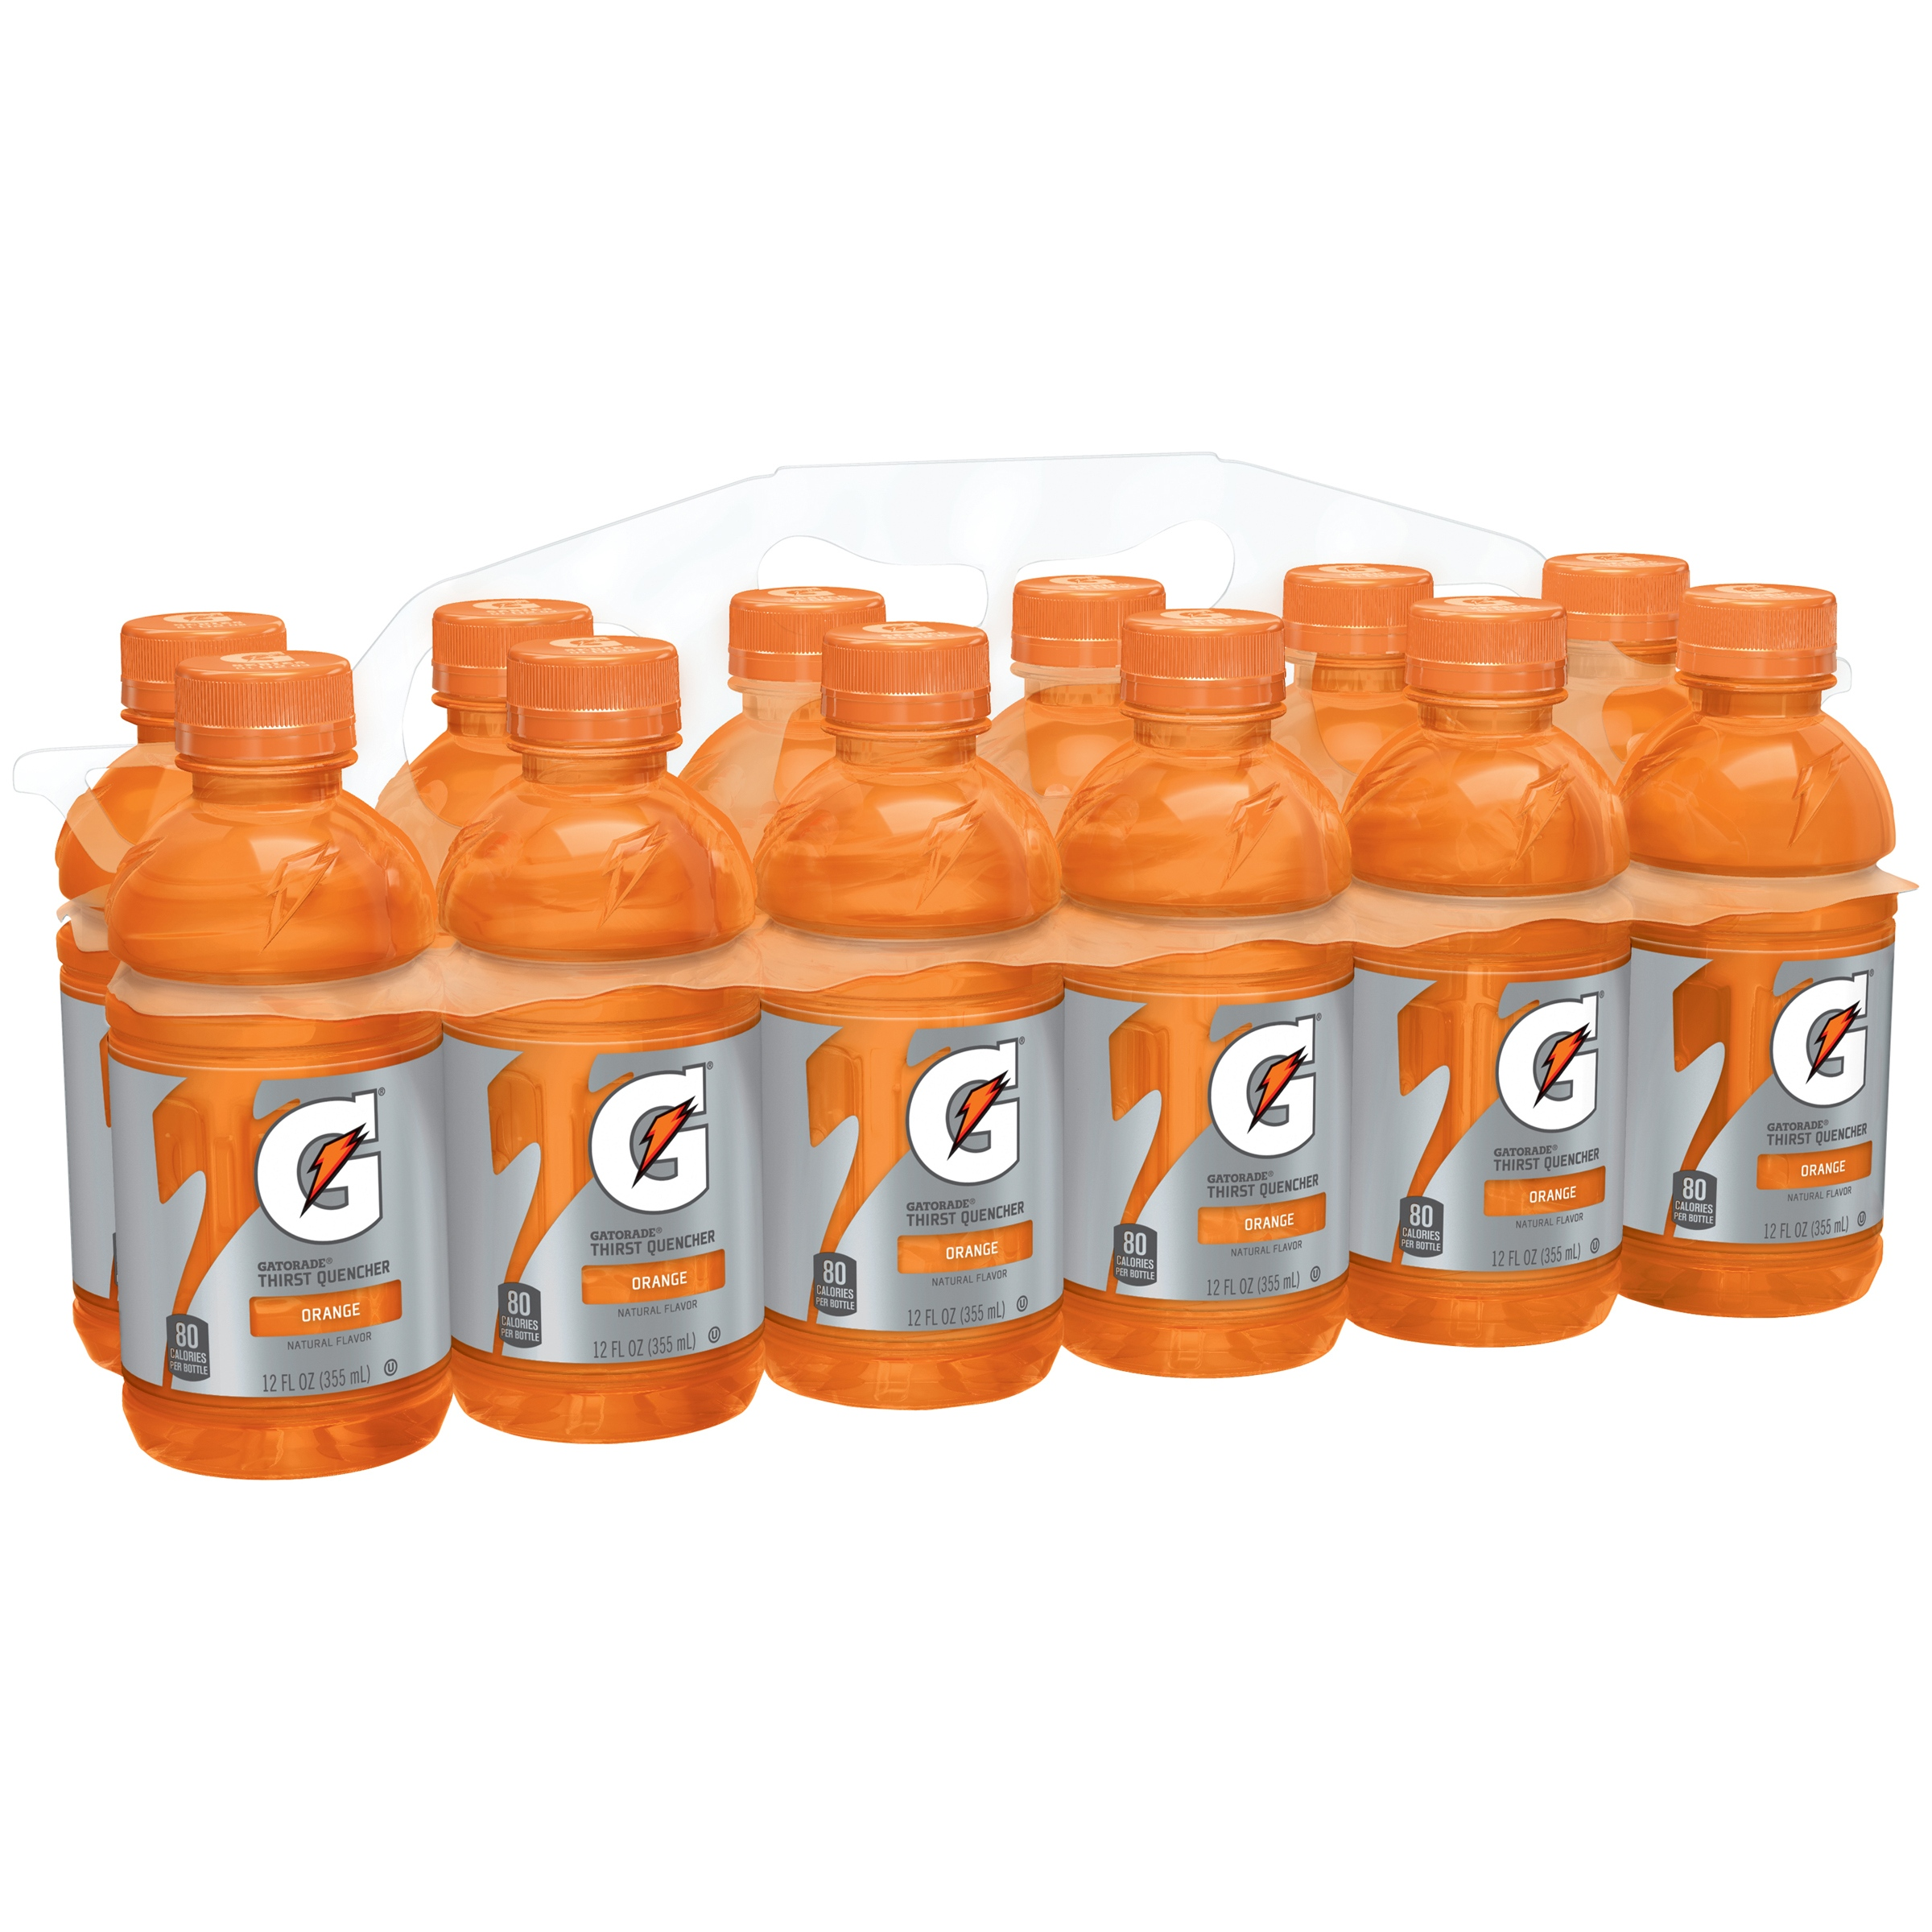 Gatorade Thirst Quencher Fierce Sports Drink, Orange, 12 Fl Oz, 12 Count